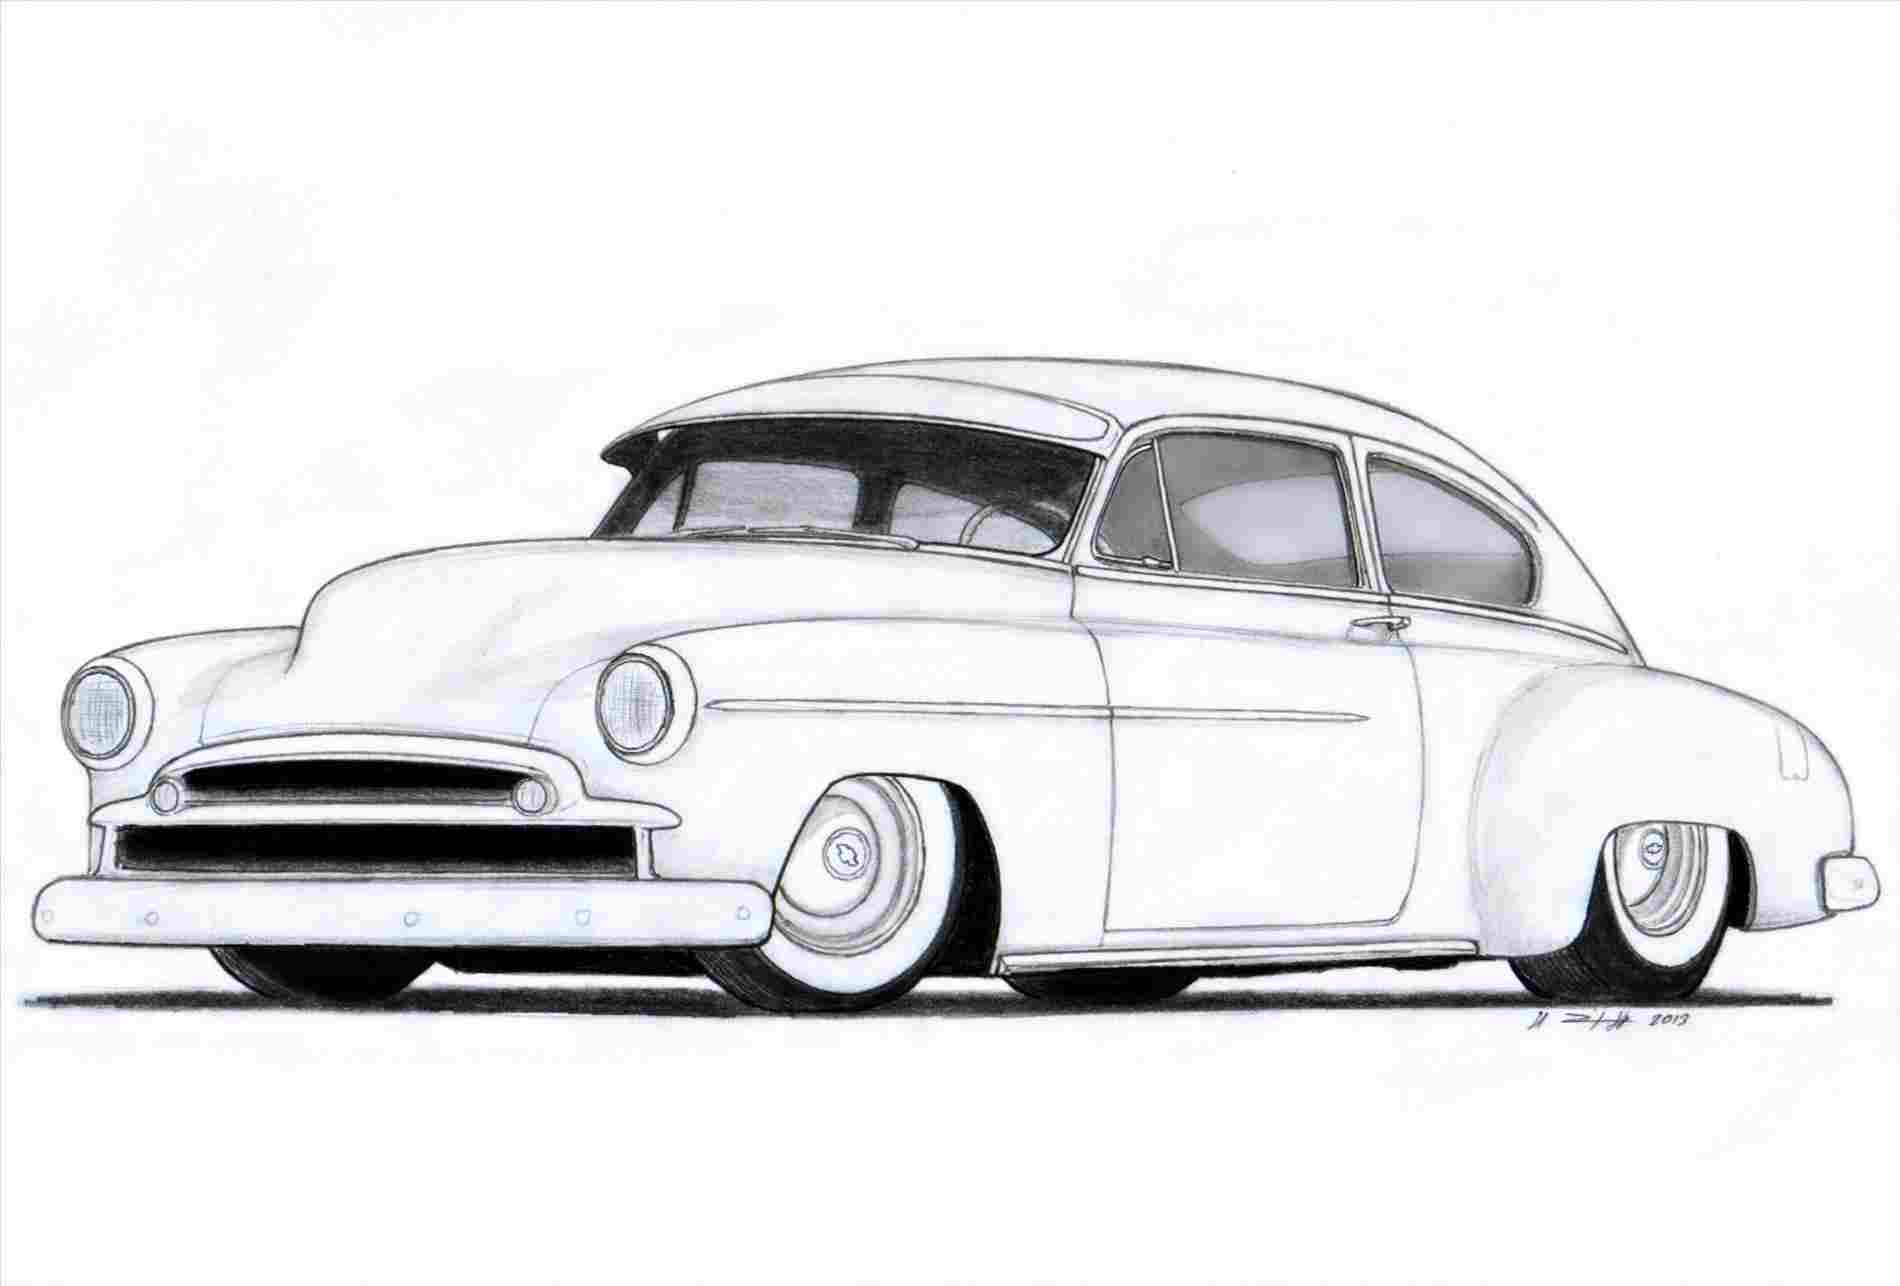 1900x1286 Lowrider Car Drawings In Pencil